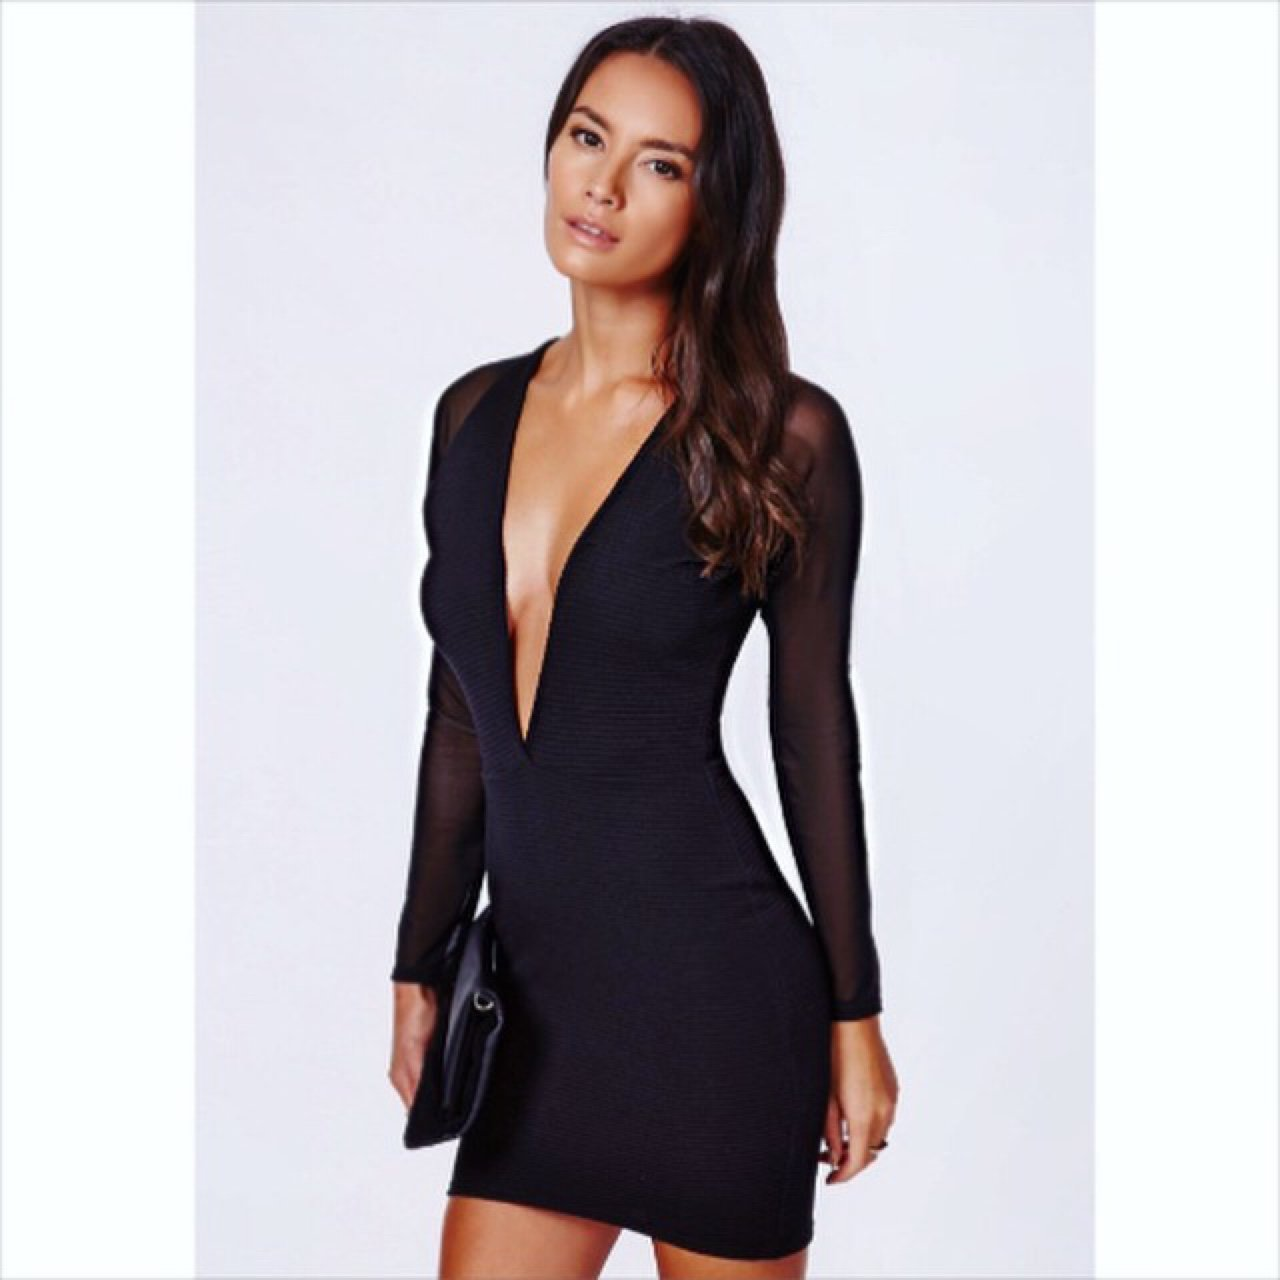 7d05a9031c2 Katiewallace87 Last Month Glasgow City Uk Black Dress With Sheer Sleeves